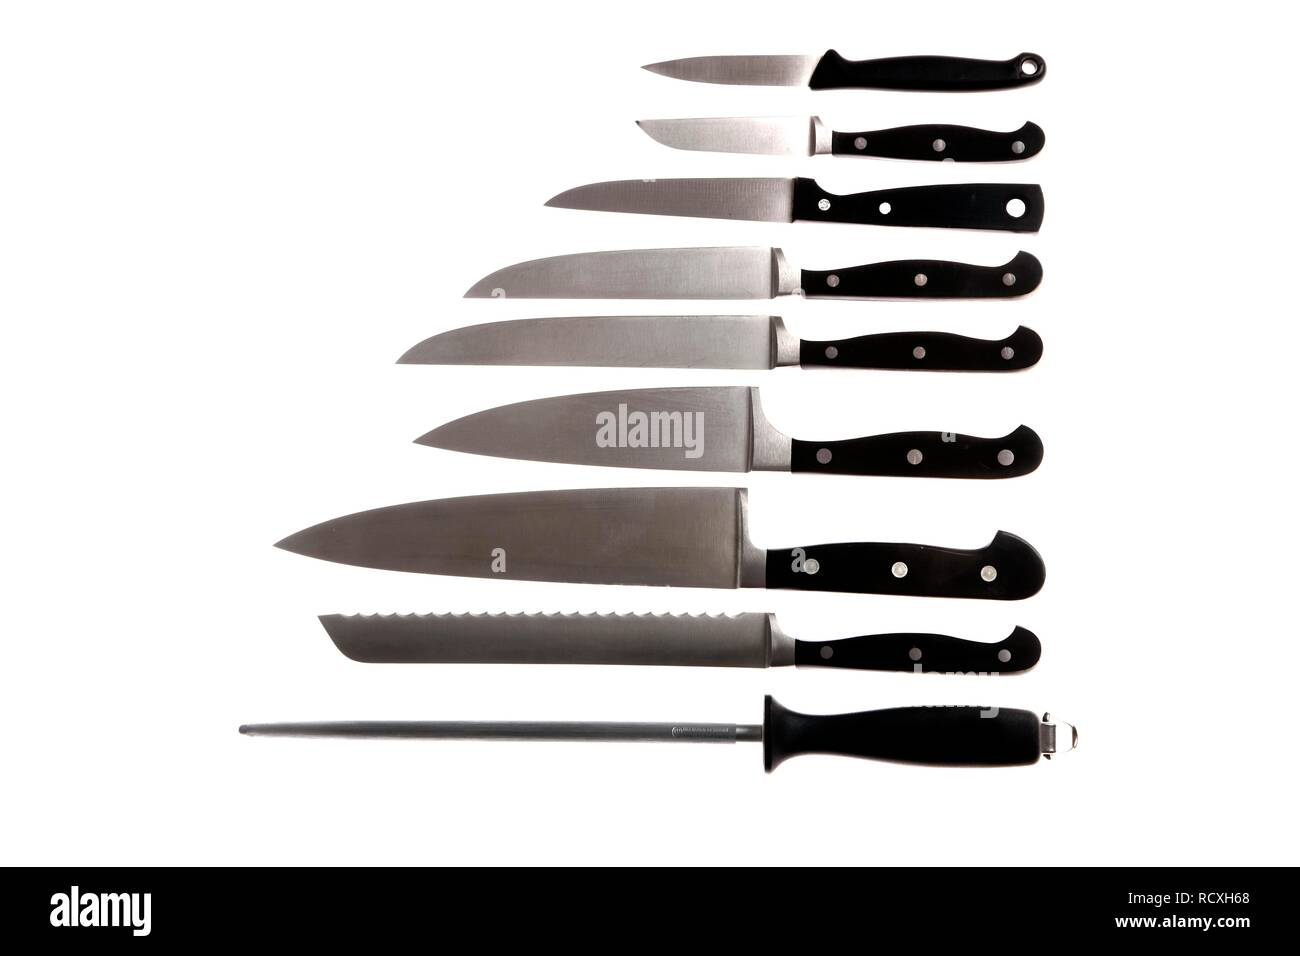 Various kitchen knives, sharpening steel, chef's knife, bread knife, filleting knife, vegetable knife - Stock Image